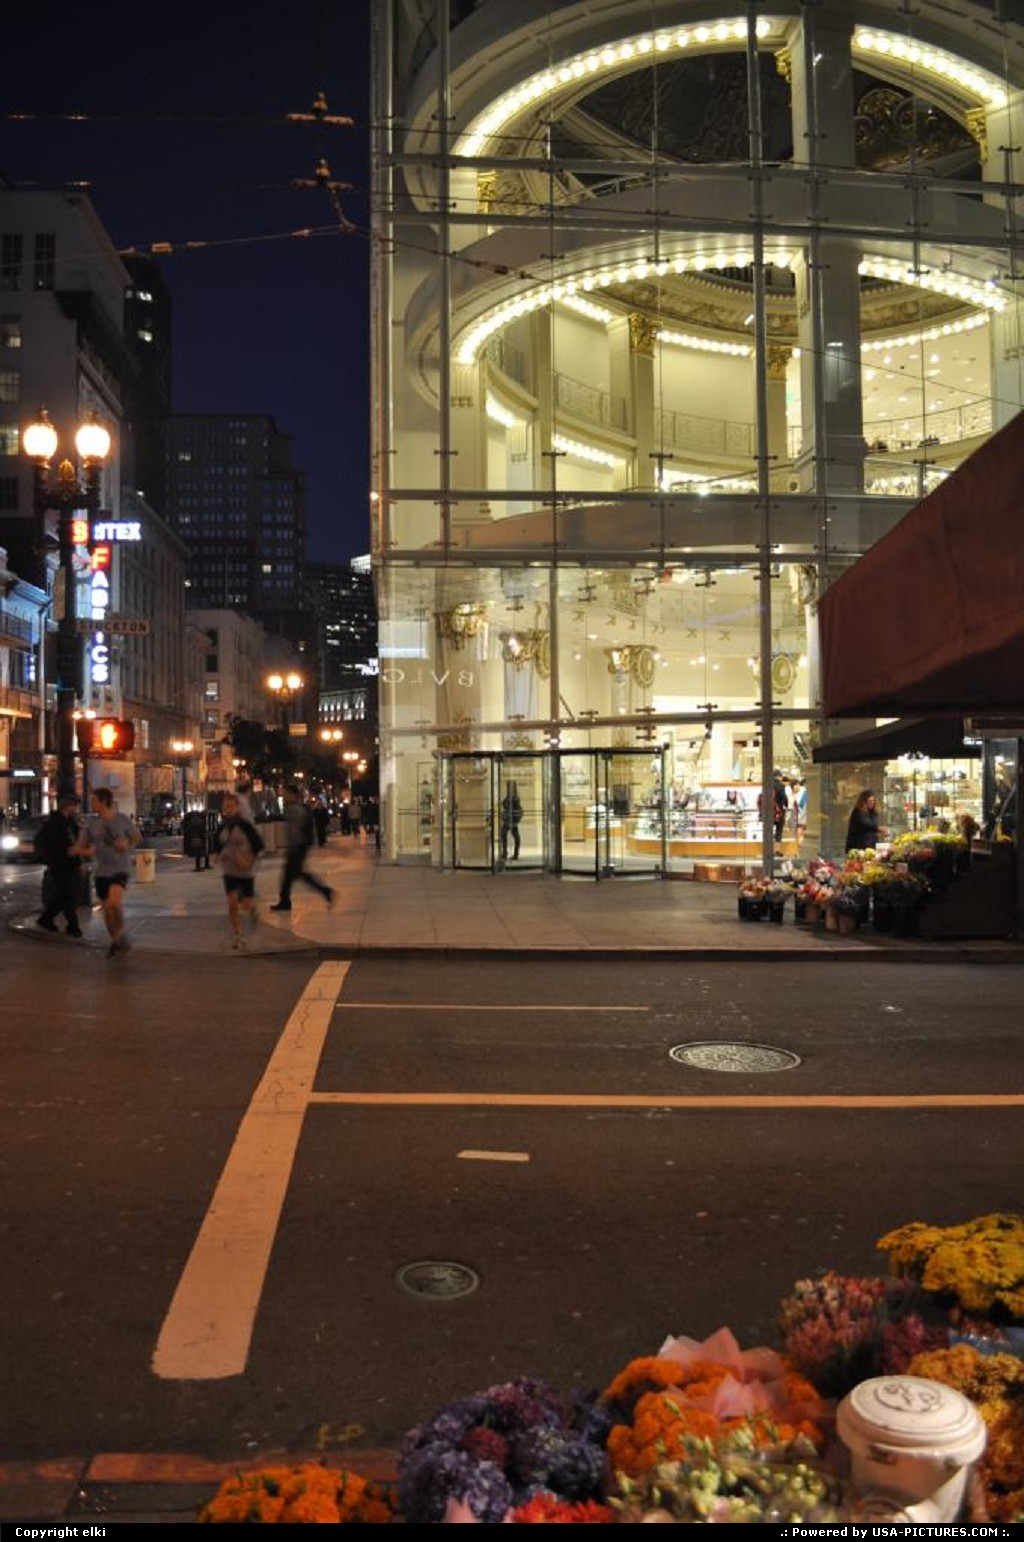 Picture by elki:San FranciscoCaliforniaunion square san francisco